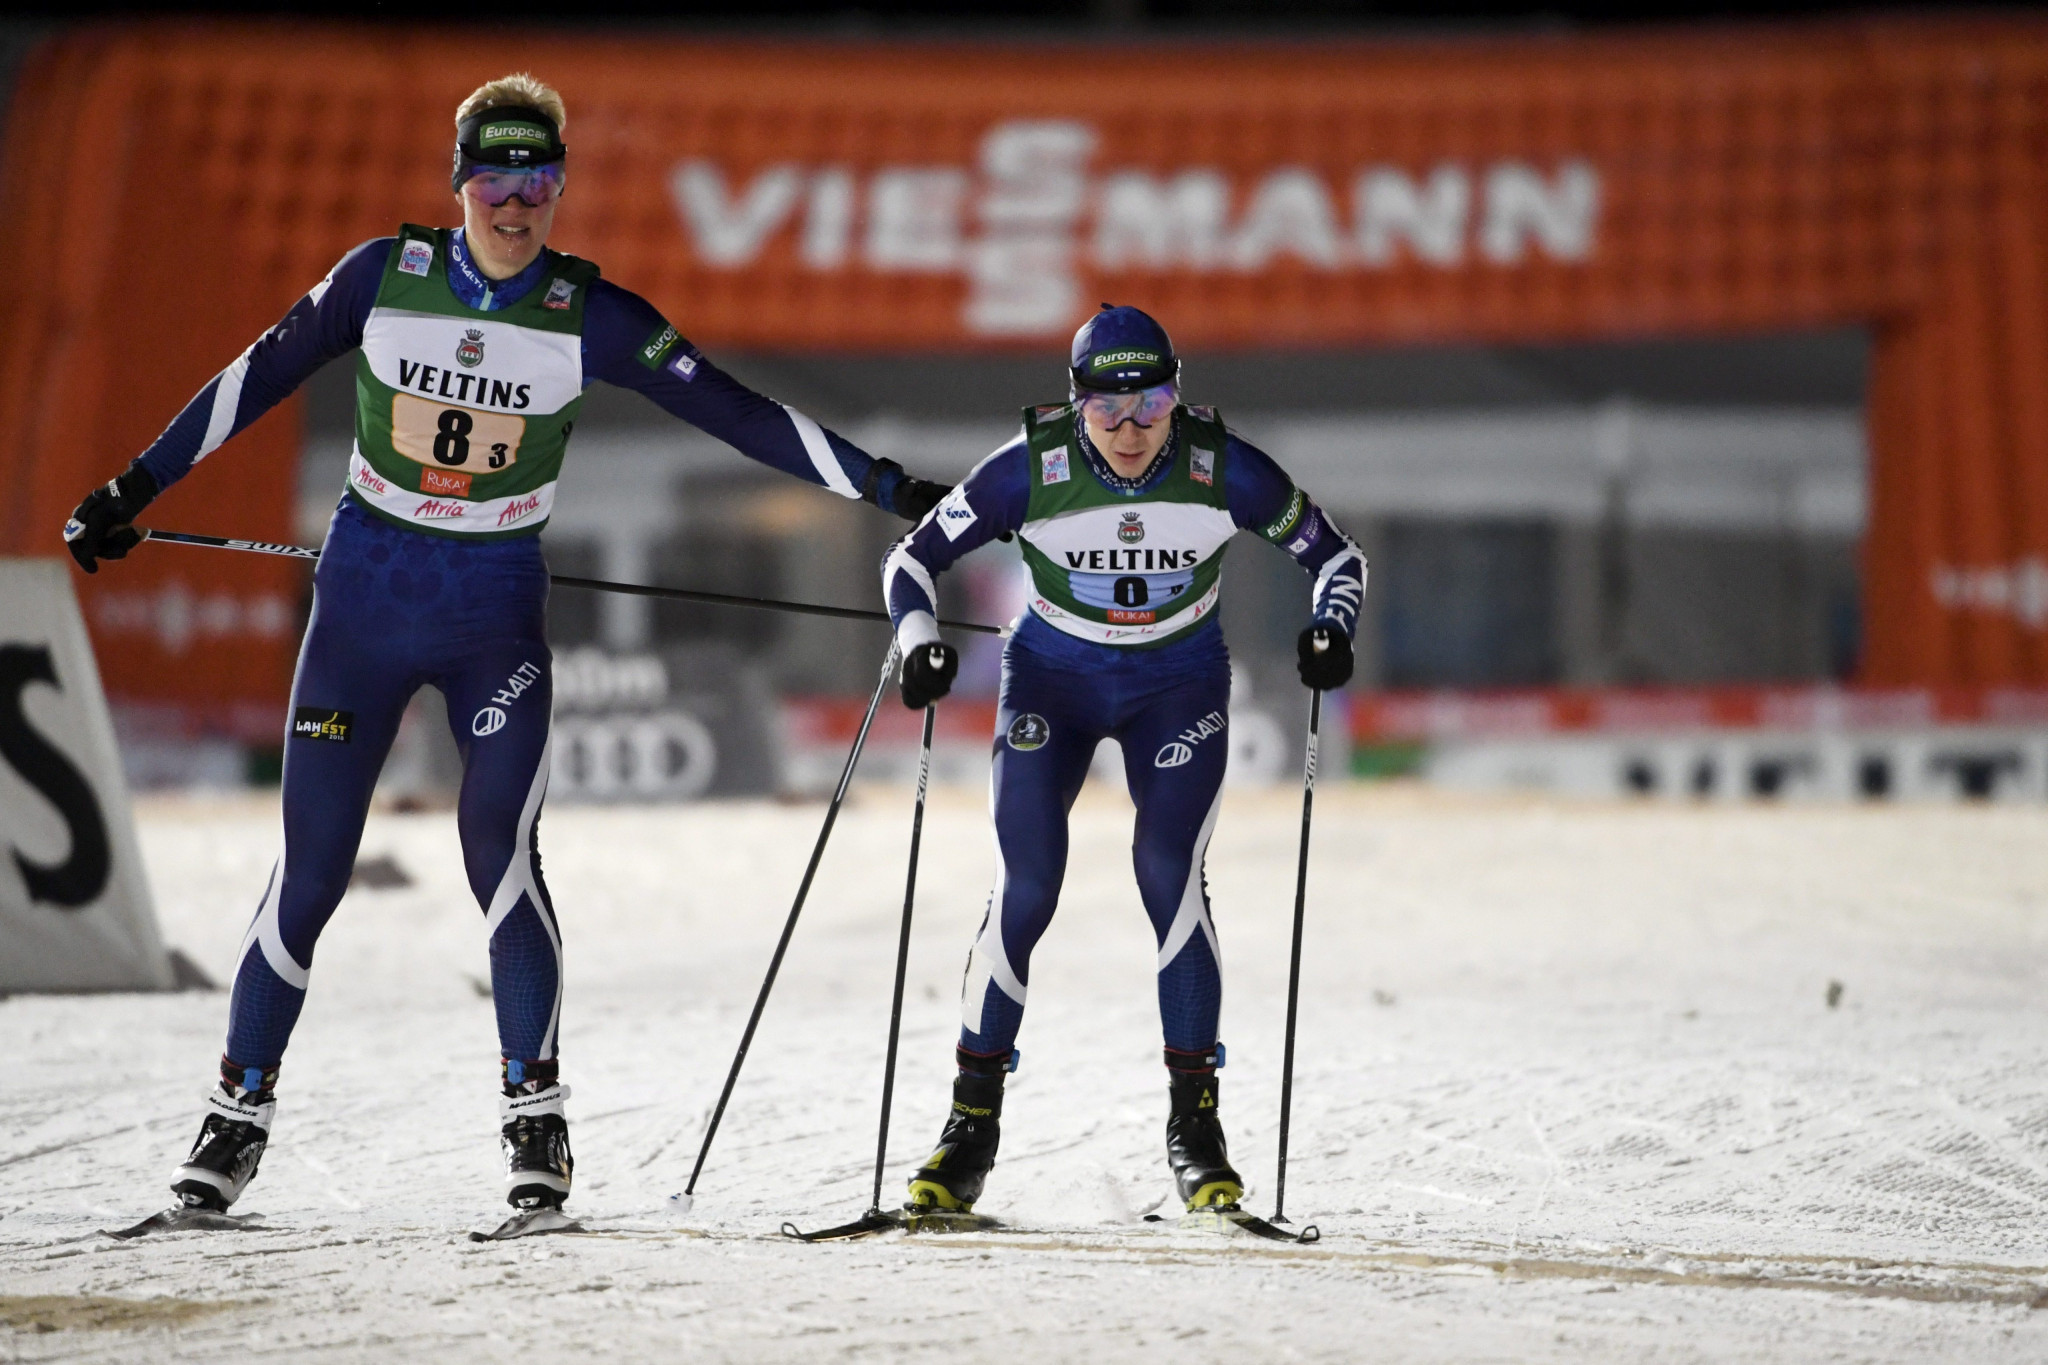 Ilkka Herola and Eero Hirvonen won the event by just 0.2 seconds from Norway's Espen Bjoernstad and Jørgen Graabak ©Getty Images